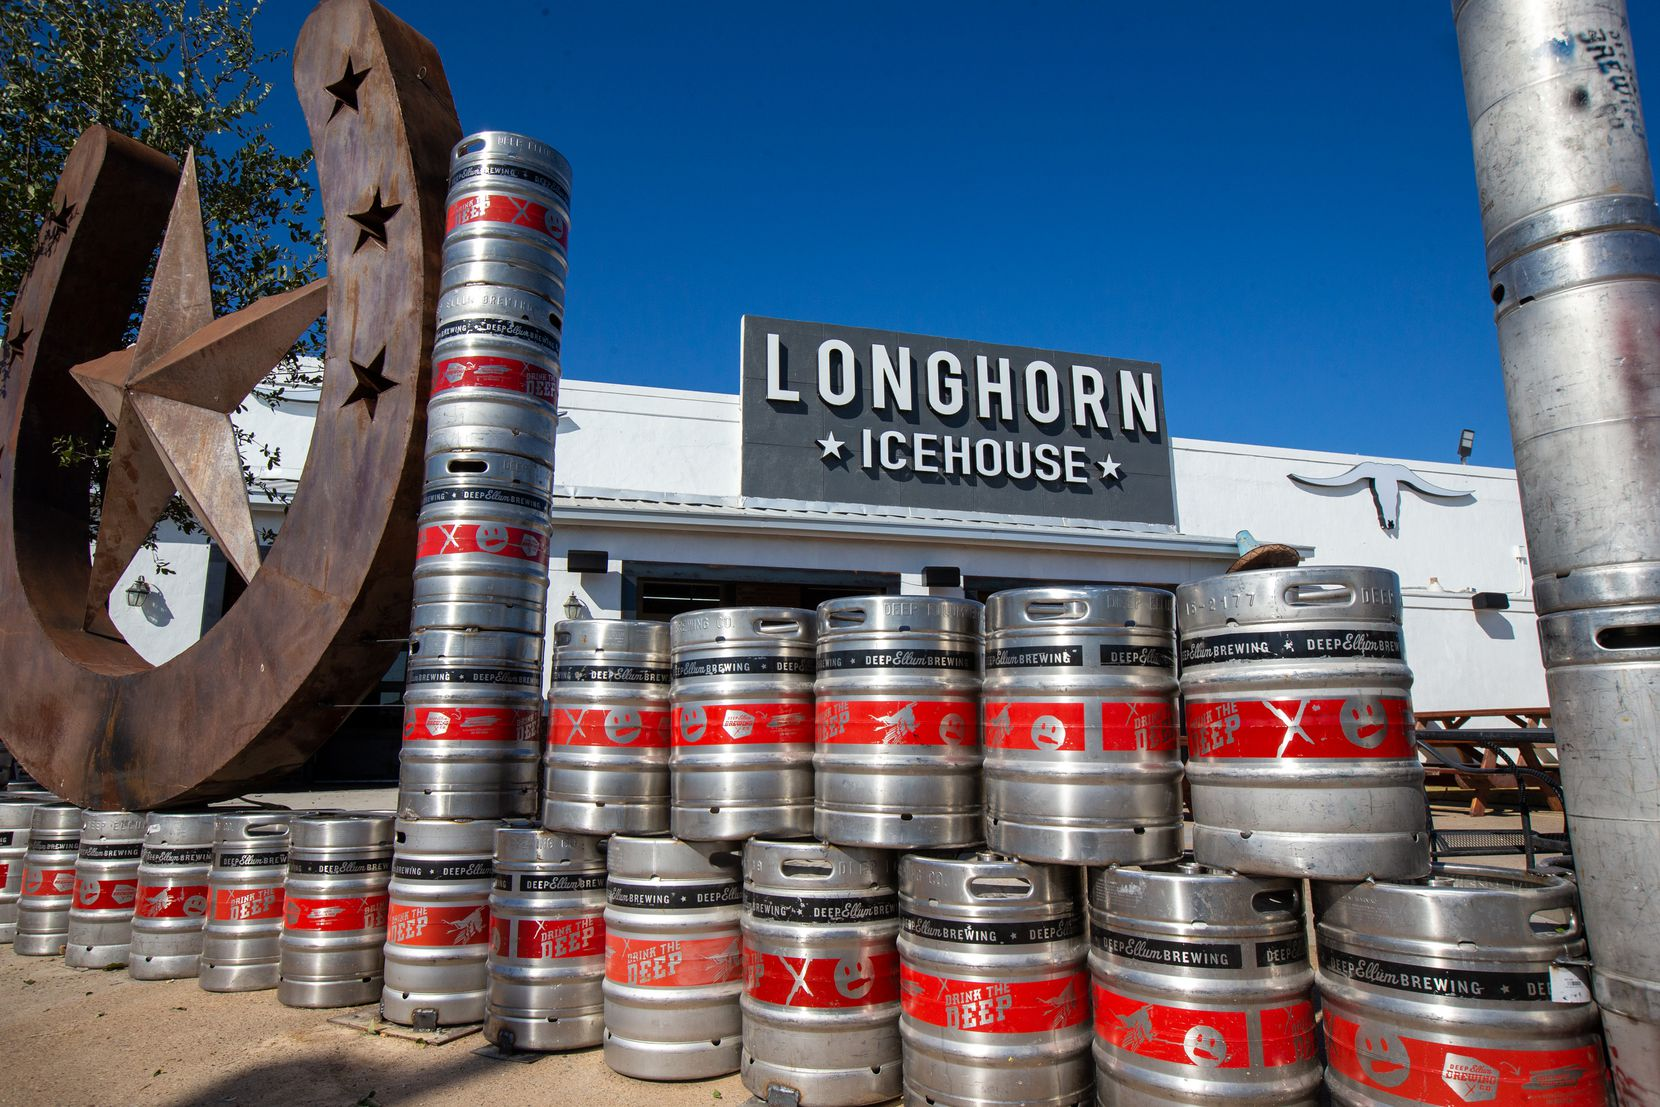 Longhorn Icehouse is located on W. Northwest Highway in Dallas. Stacks of kegs can be seen inside and outside the massive, 20,000 square-foot bar.